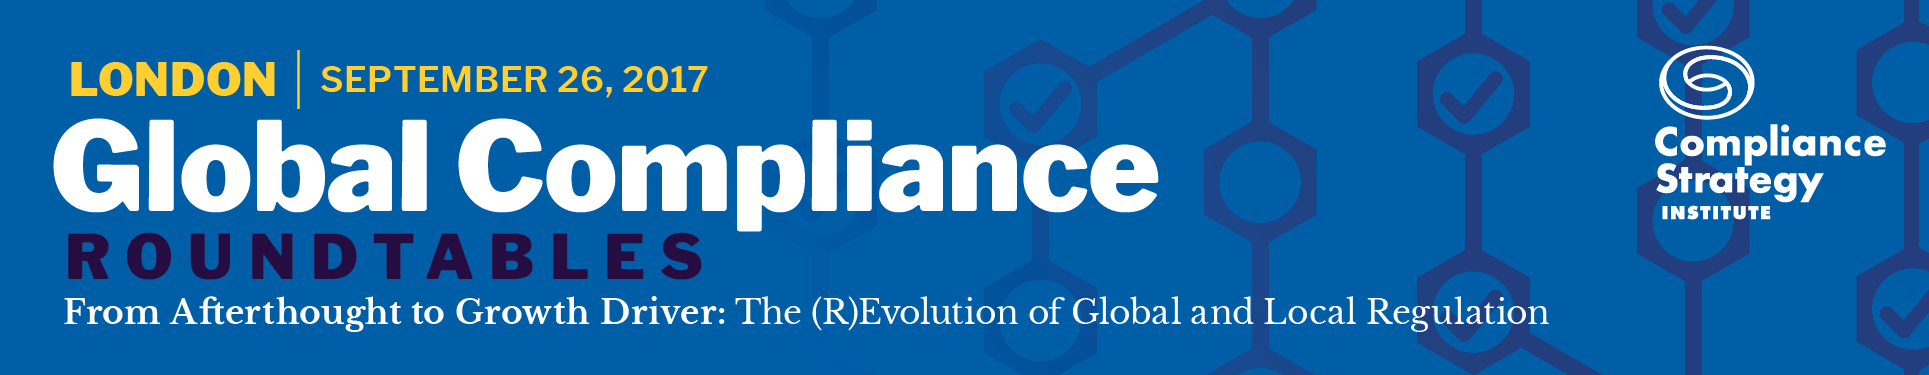 Global Compliance Roundtable, London